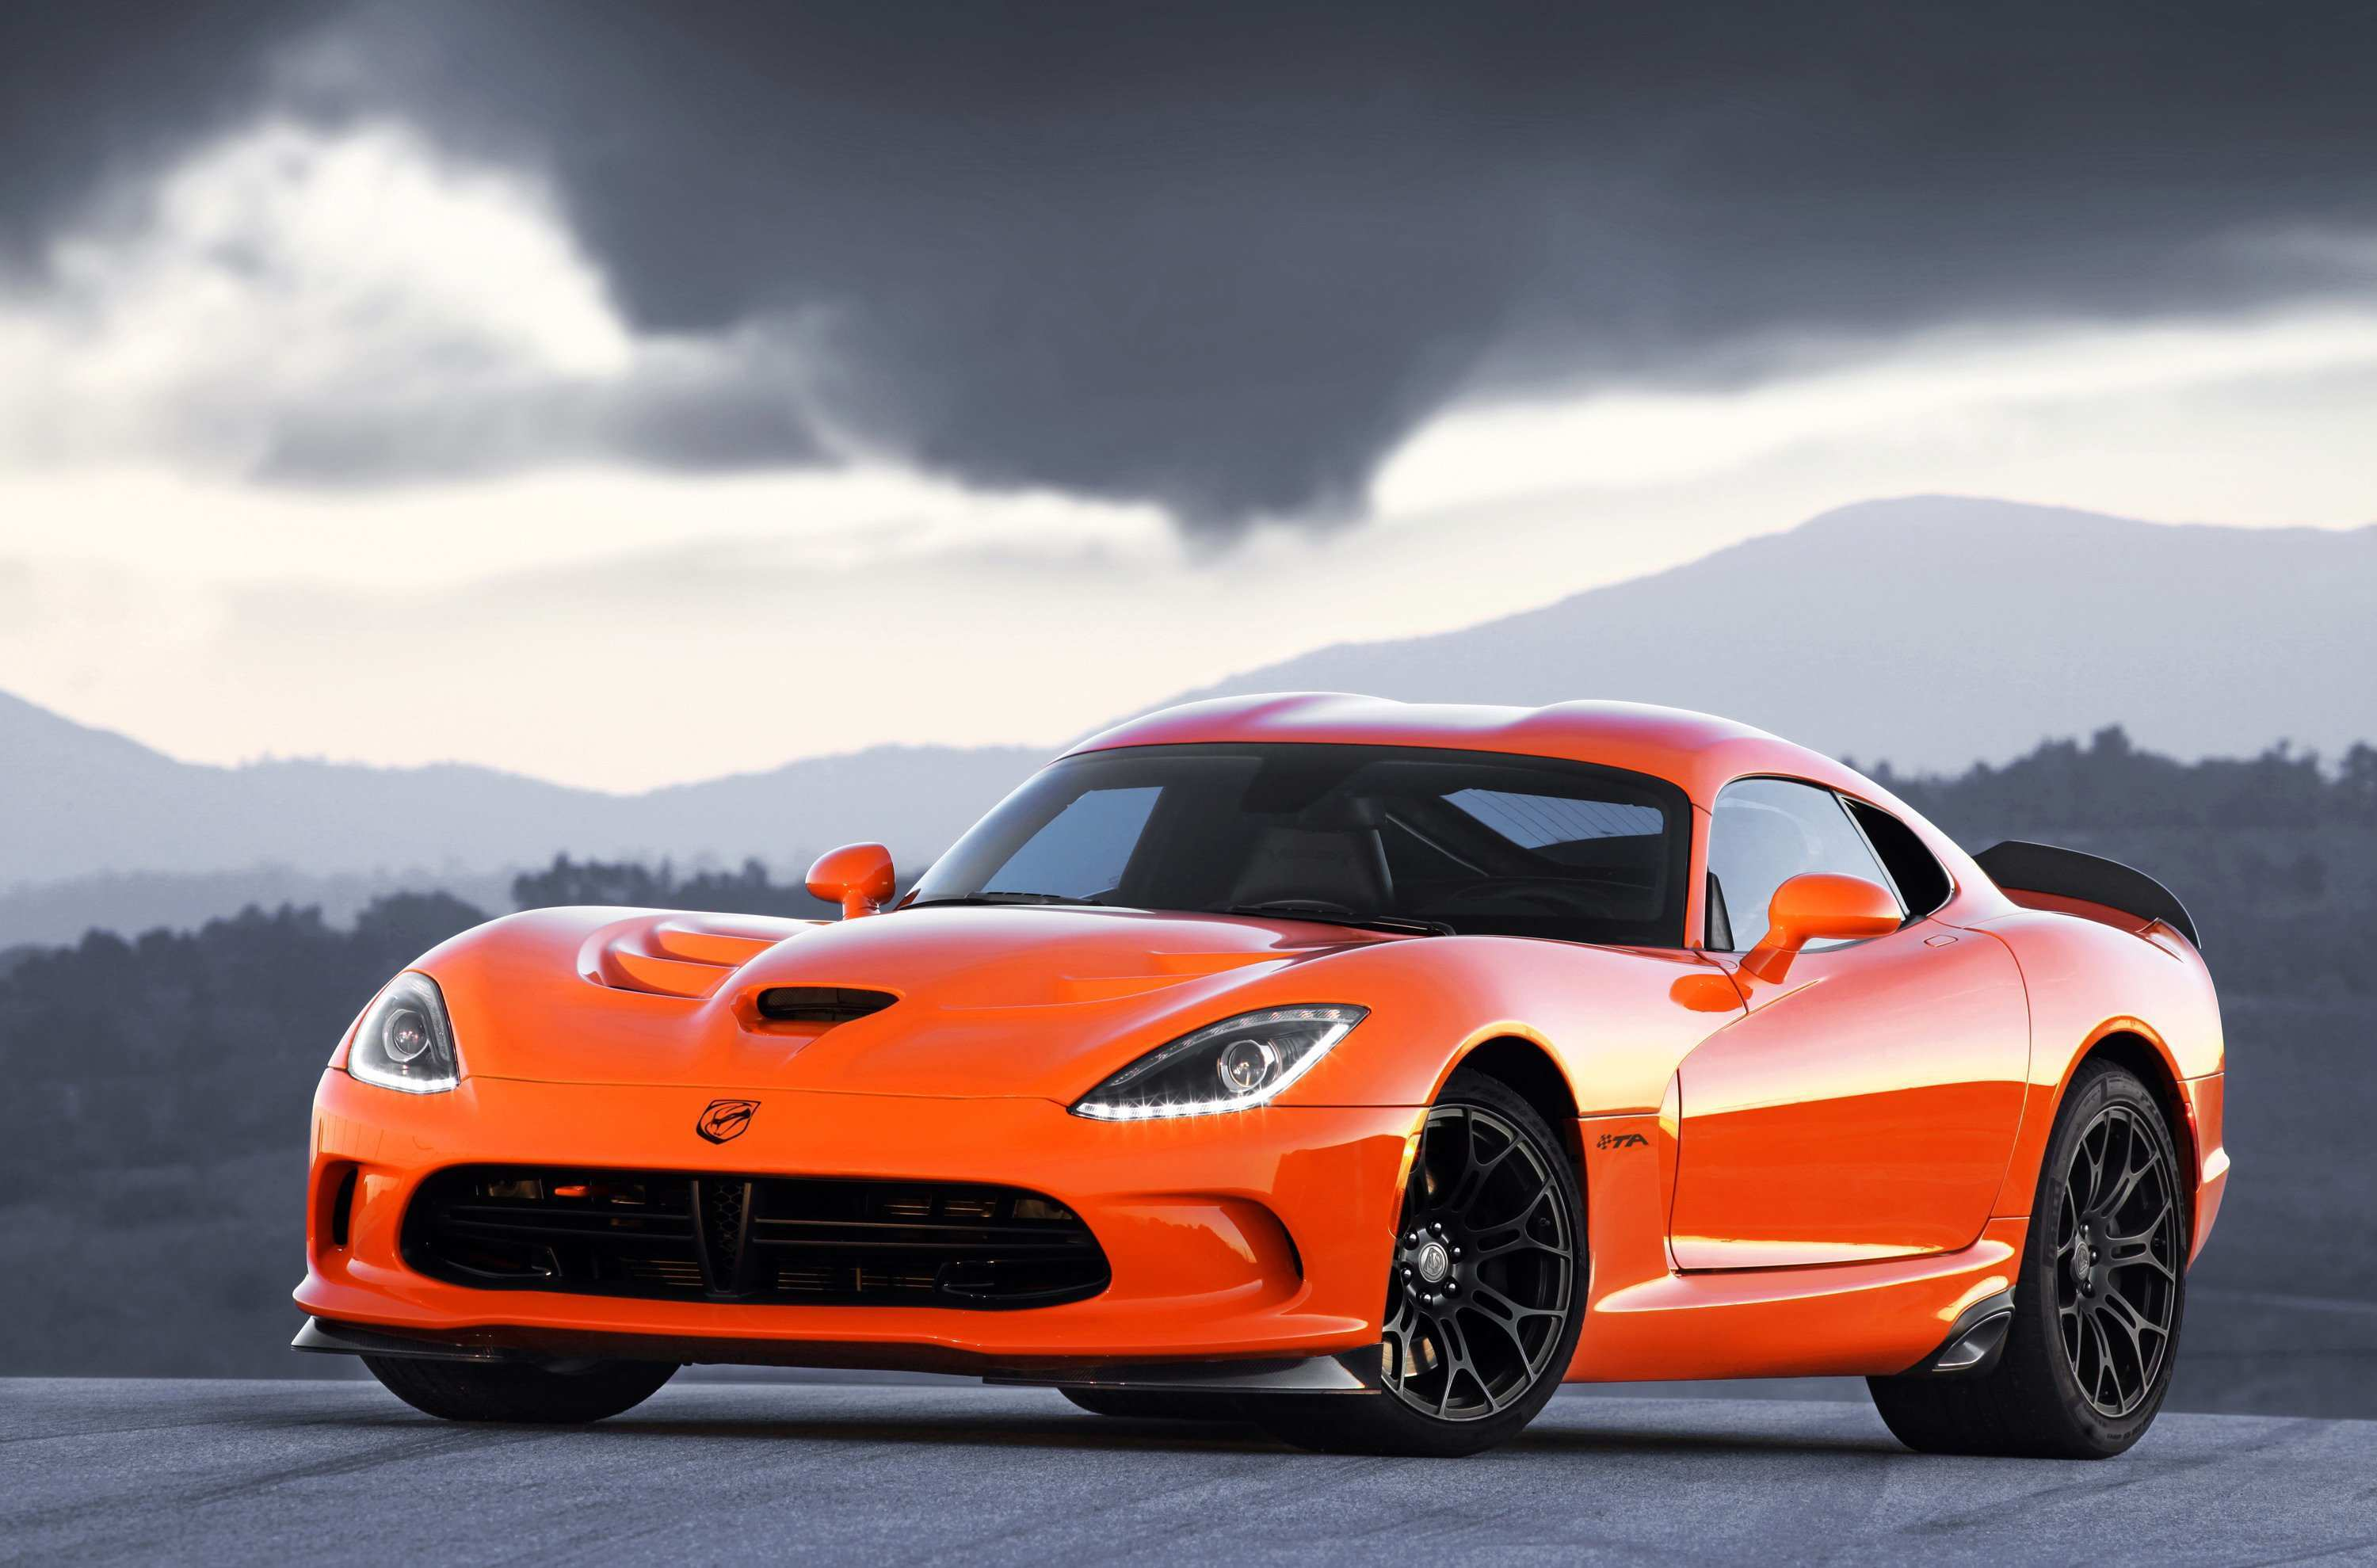 44 A 2020 Dodge Viper ACR Exterior And Interior